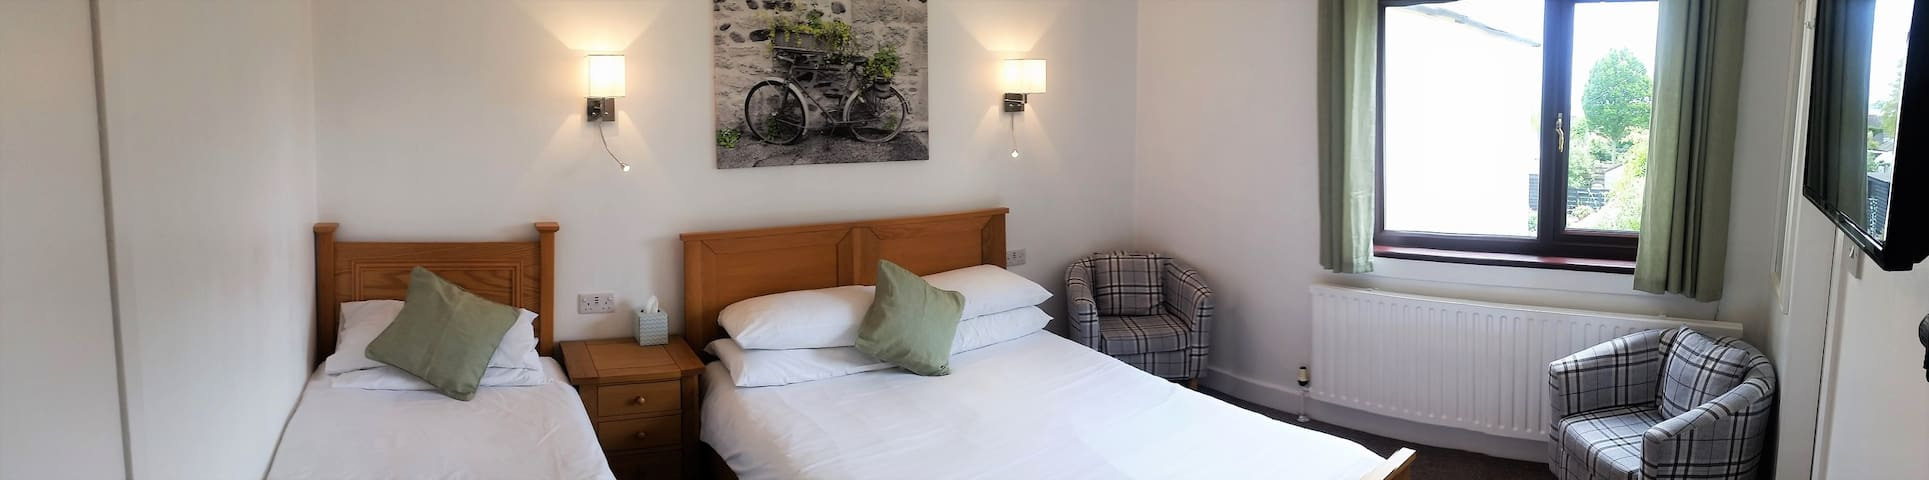 Triple Room, Dog Friendly Above Book Cafe Wigtown